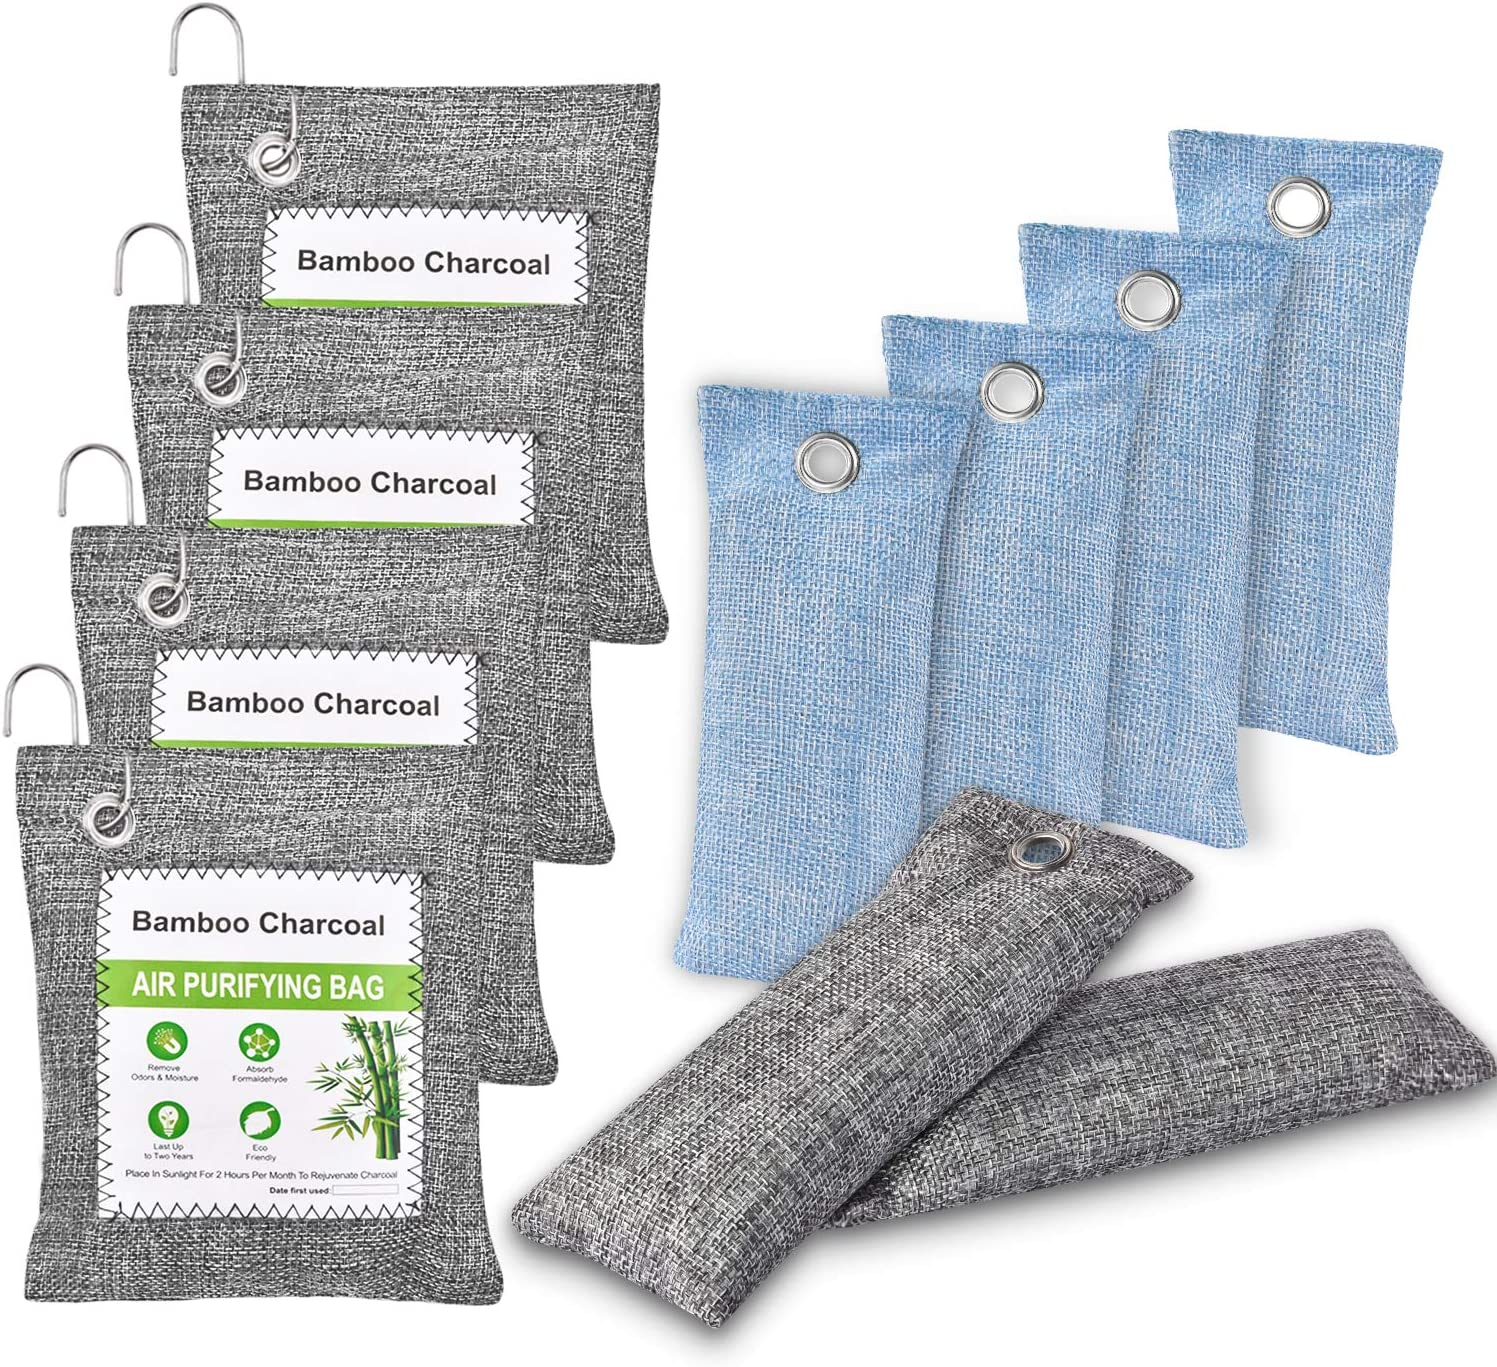 10 Pack Bamboo Charcoal Air Purifying Bag with 4 hooks, Activated Charcoal Bags Odor Absorber, Nature Fresh Charcoal Odor Eliminator Bags for Home, Car, Pet, Shoes, Gym Bag